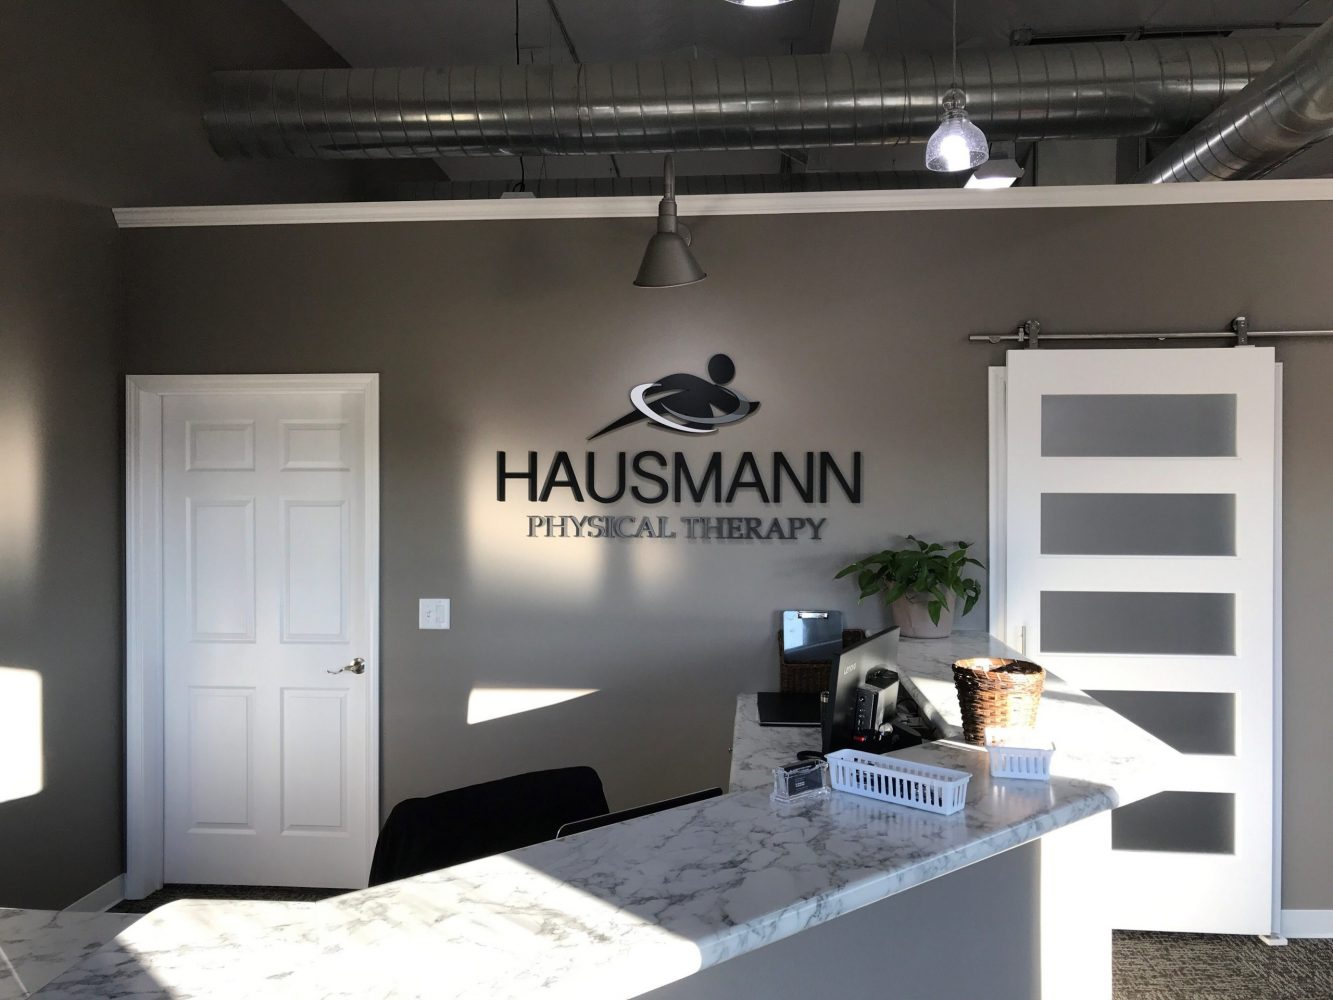 Front desk at hausmann physical therapy